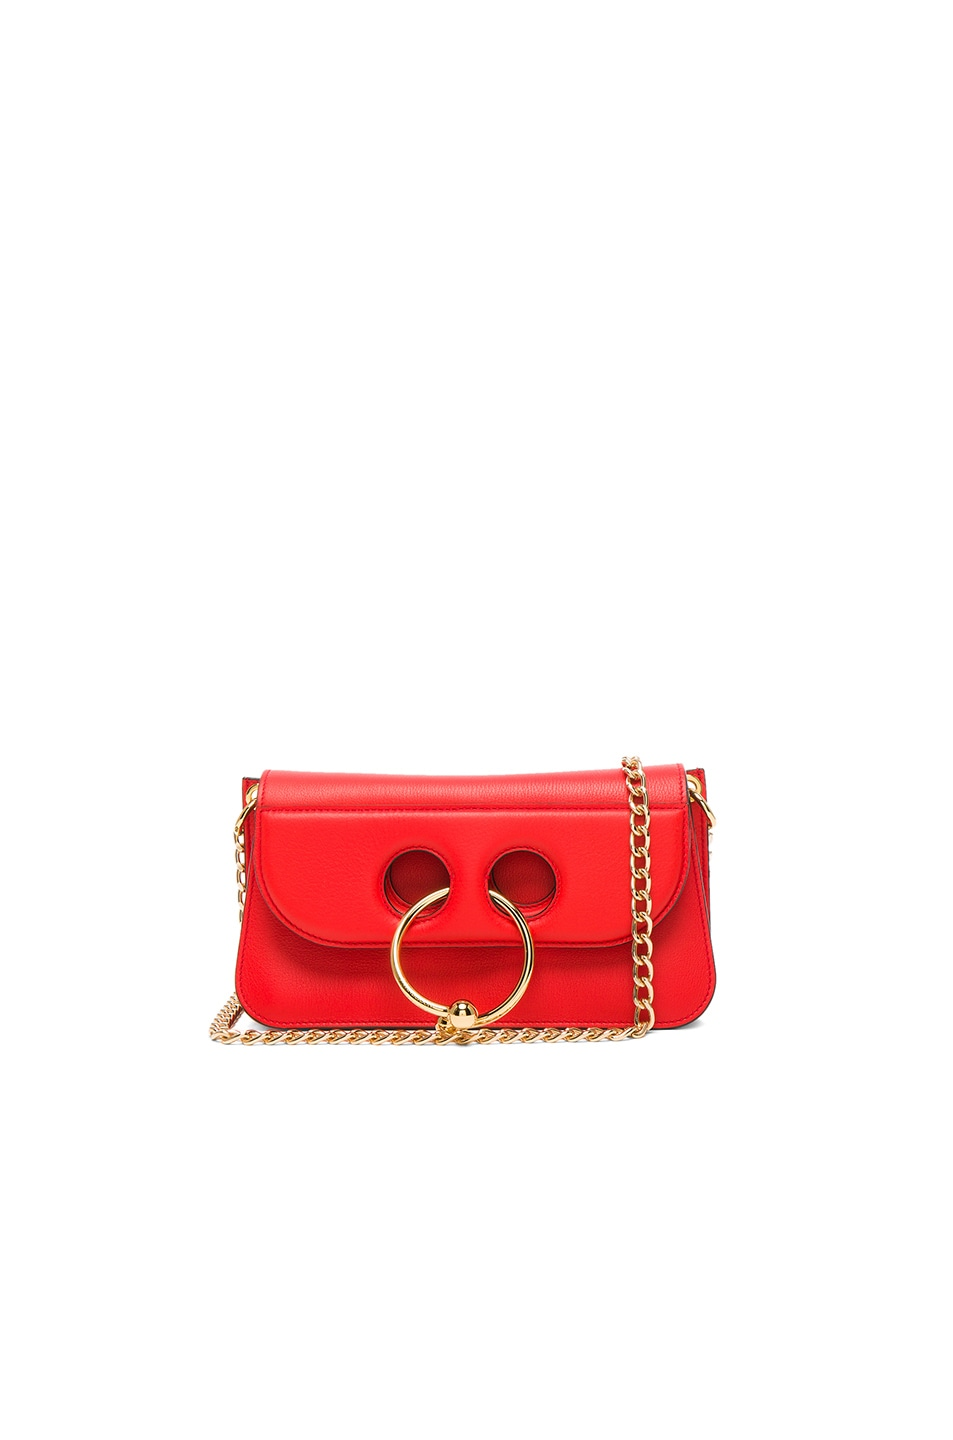 Image 1 of J.W. Anderson Small Pierce Bag in Scarlet